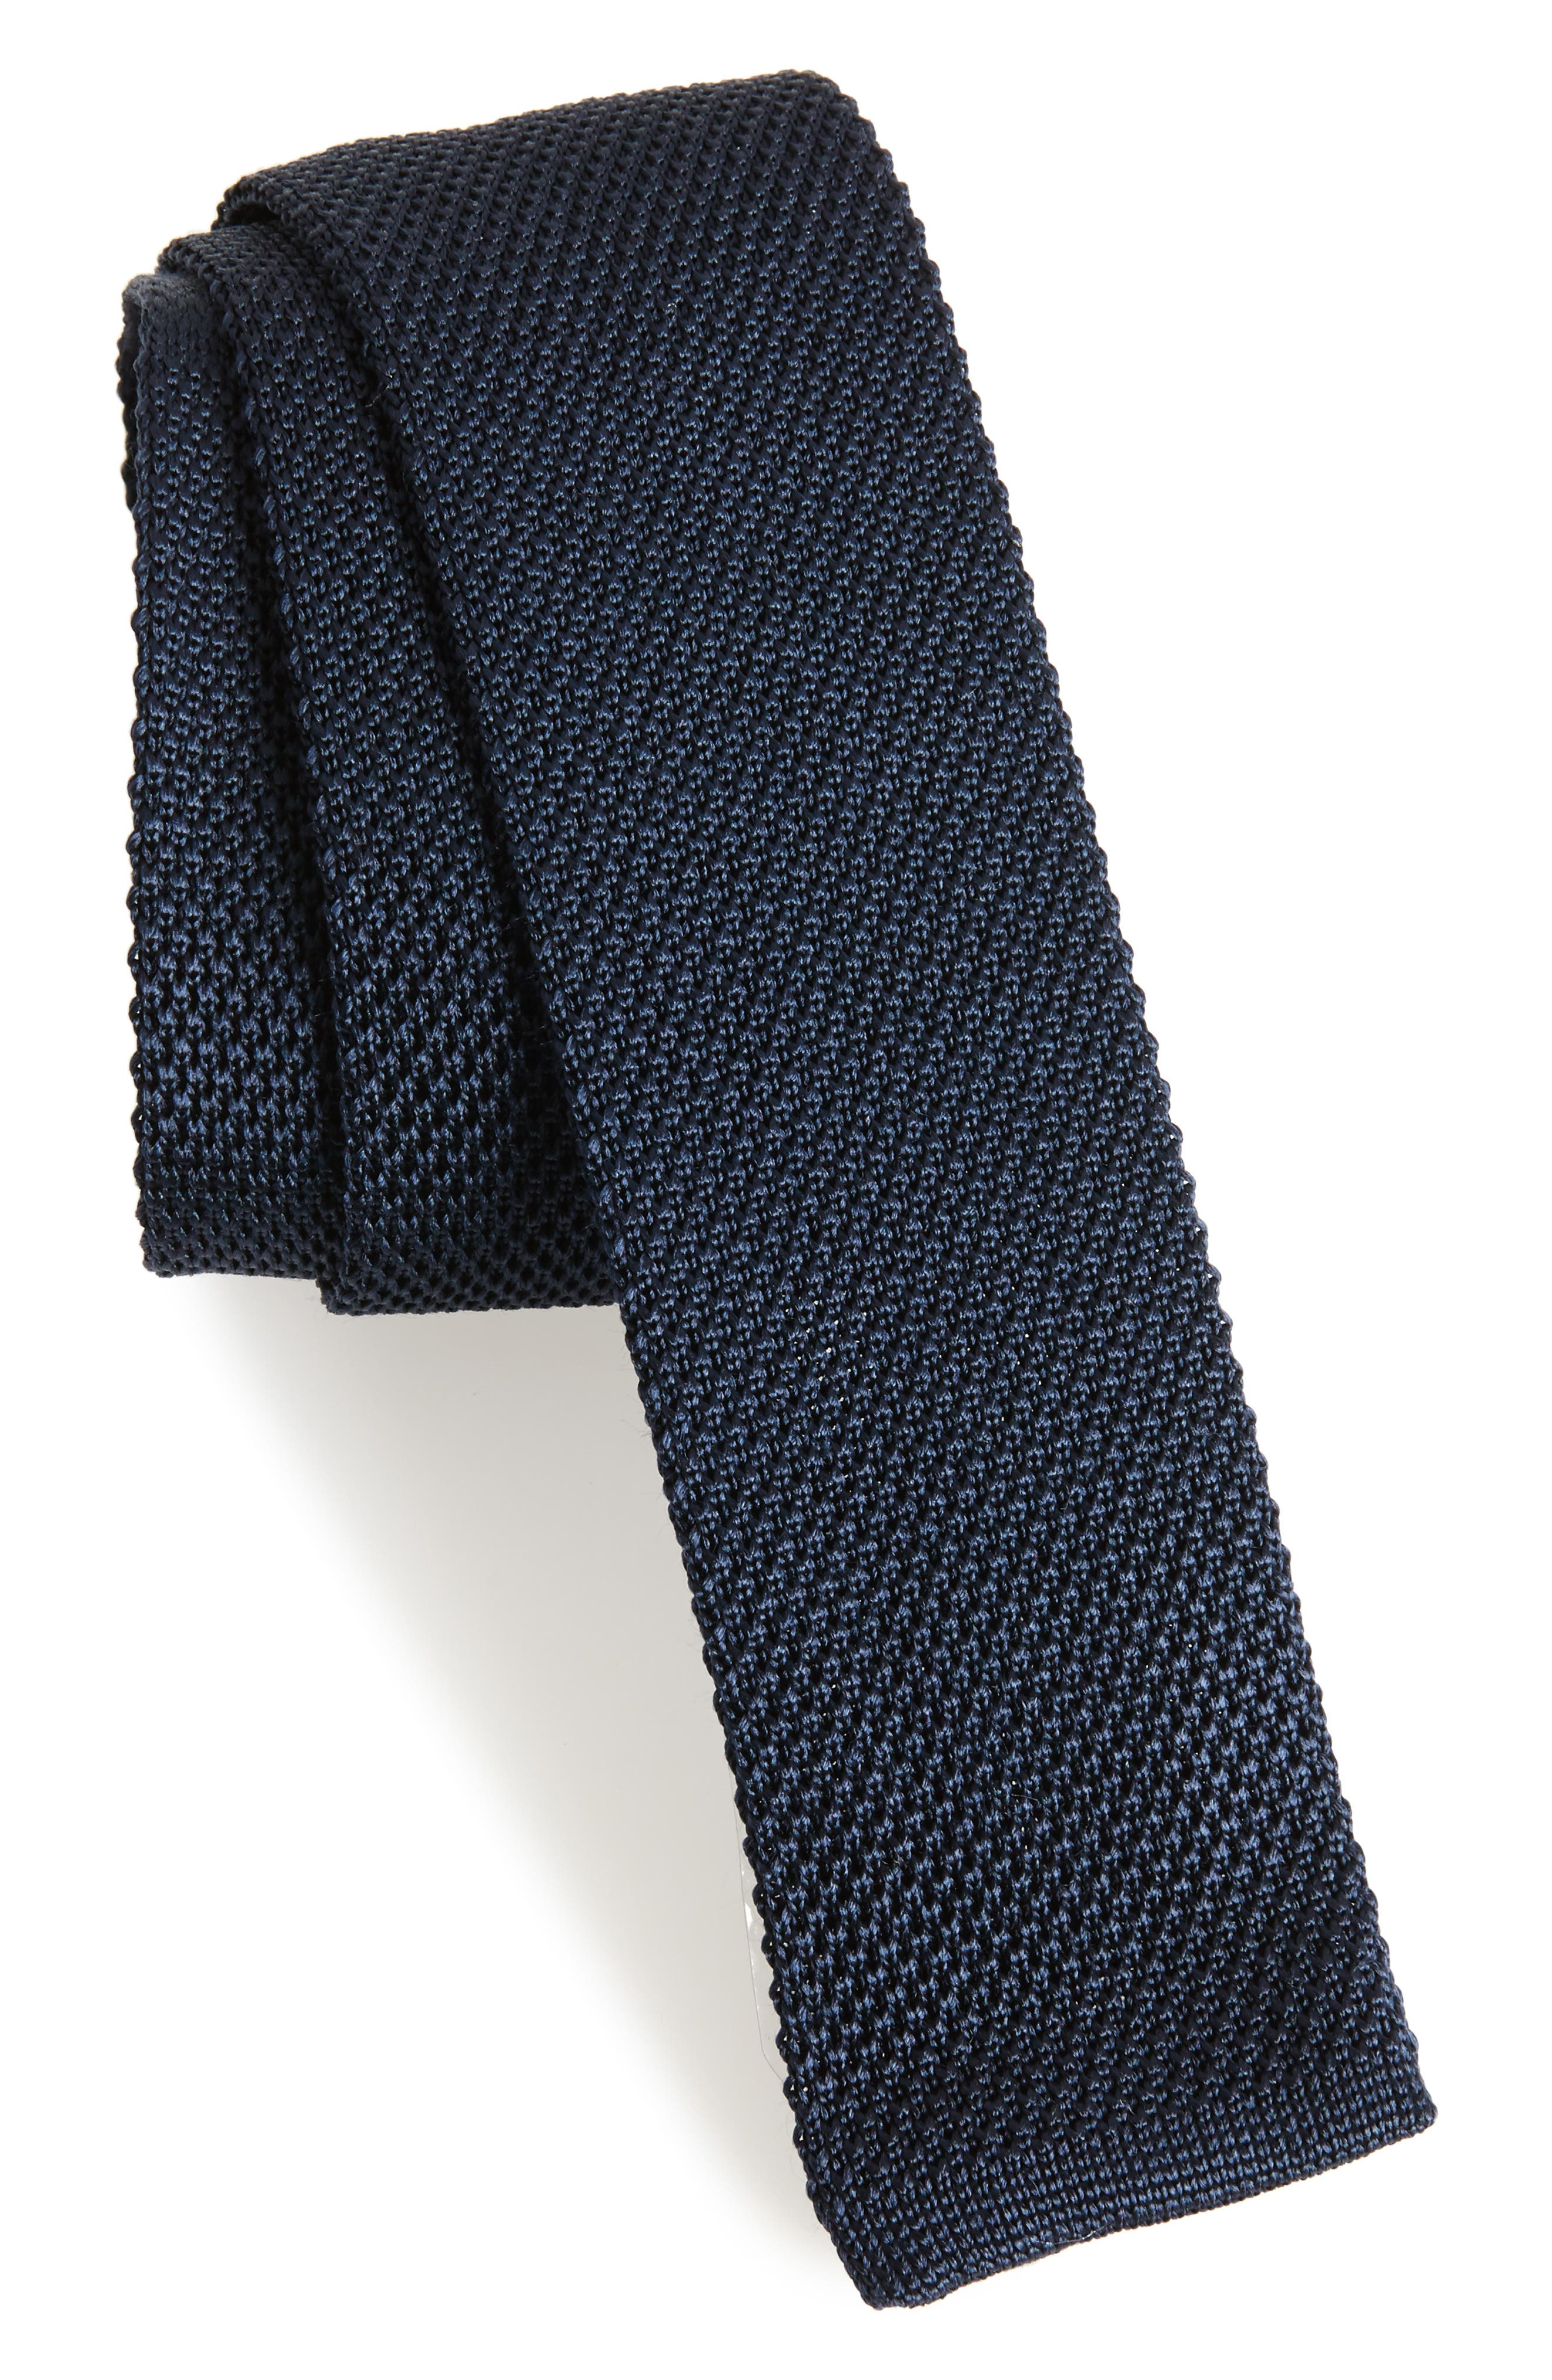 Solid Knit Silk Tie,                             Main thumbnail 1, color,                             Navy